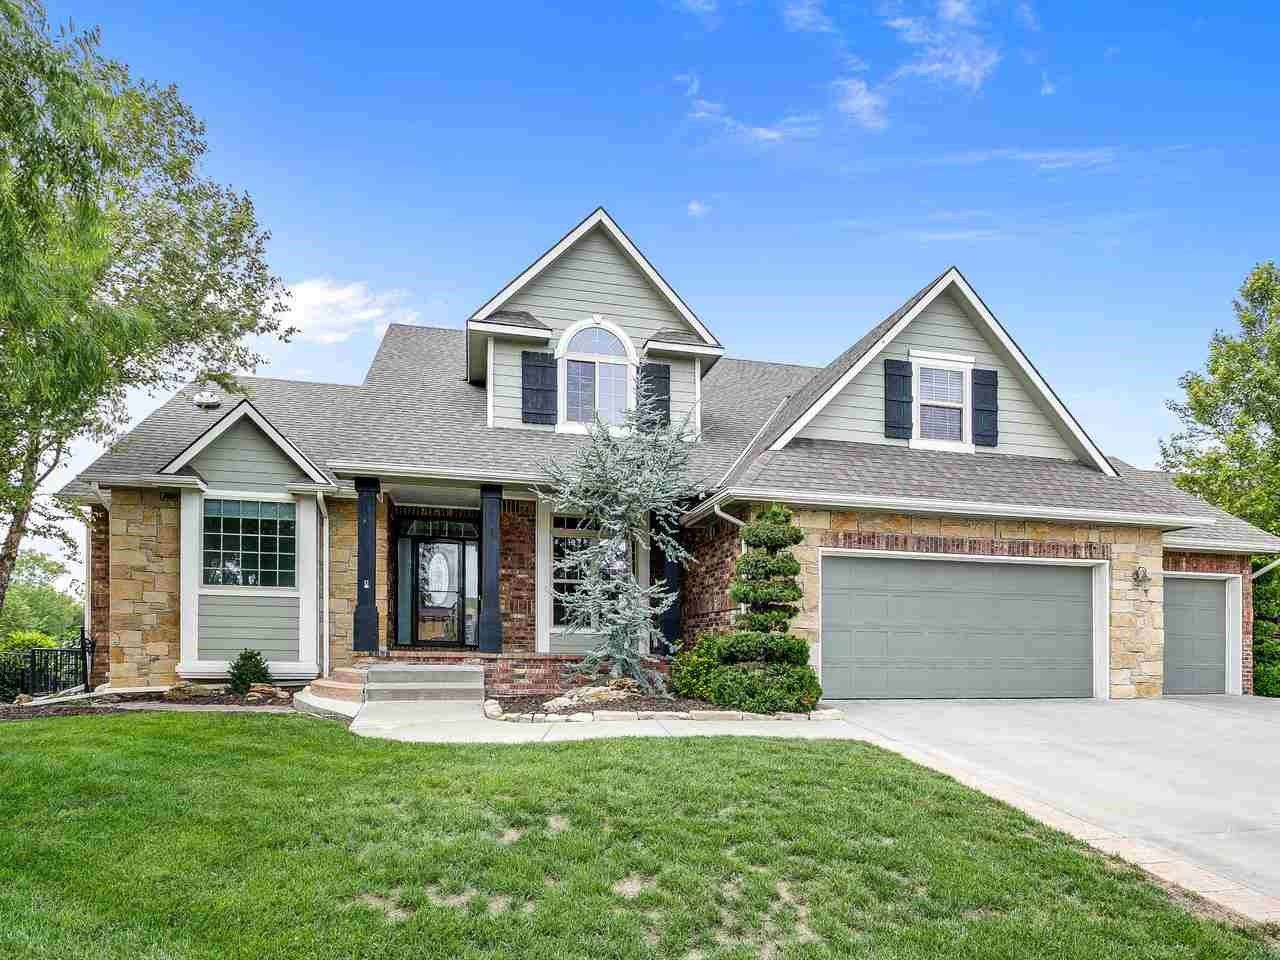 See Details For 513 N Woodridge St Wichita Ks 67206 6 Bedrooms 3 Full 1 Half Bathrooms 4276 Sq Ft Mls 555689 Courtesy Metro With Images House Styles Home House